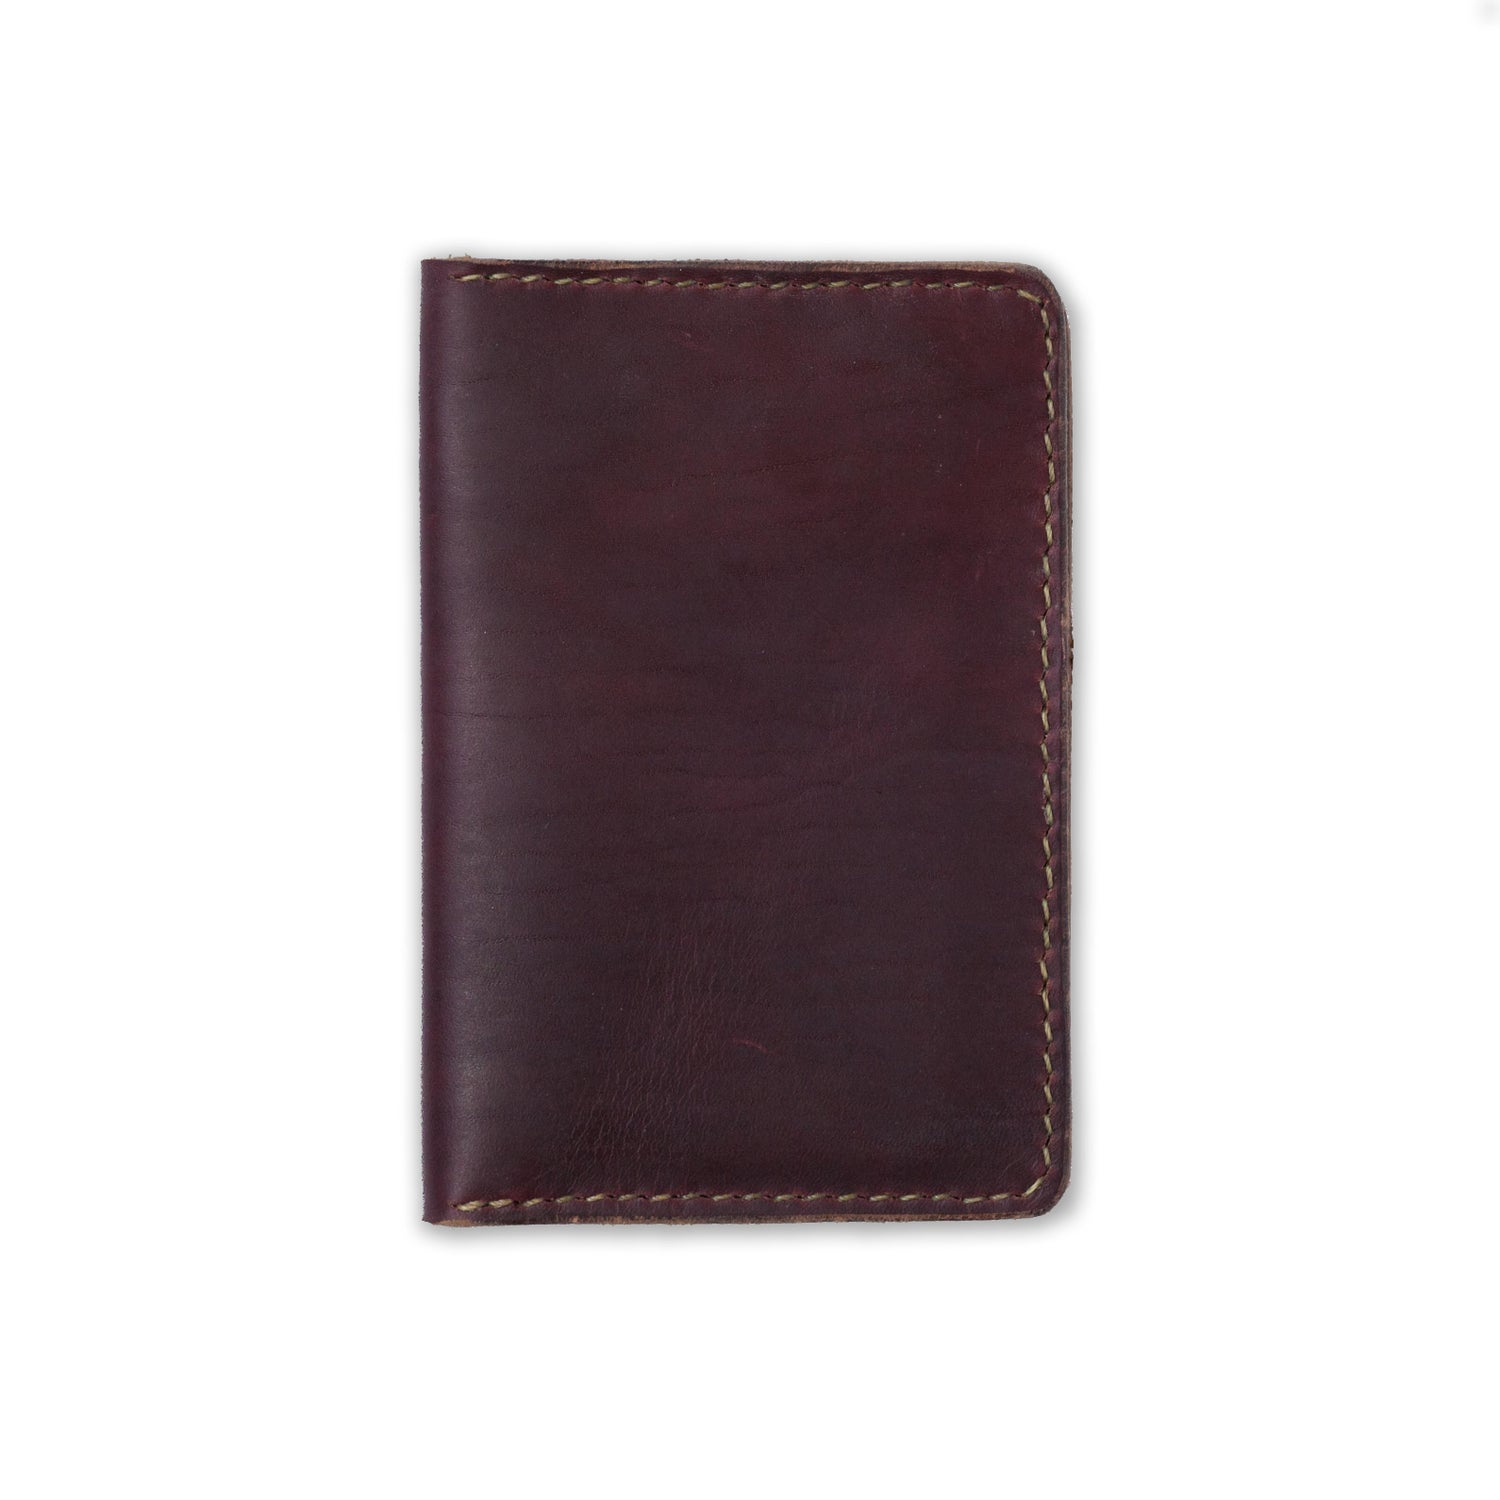 Image of Oxblood Notebook Wallet